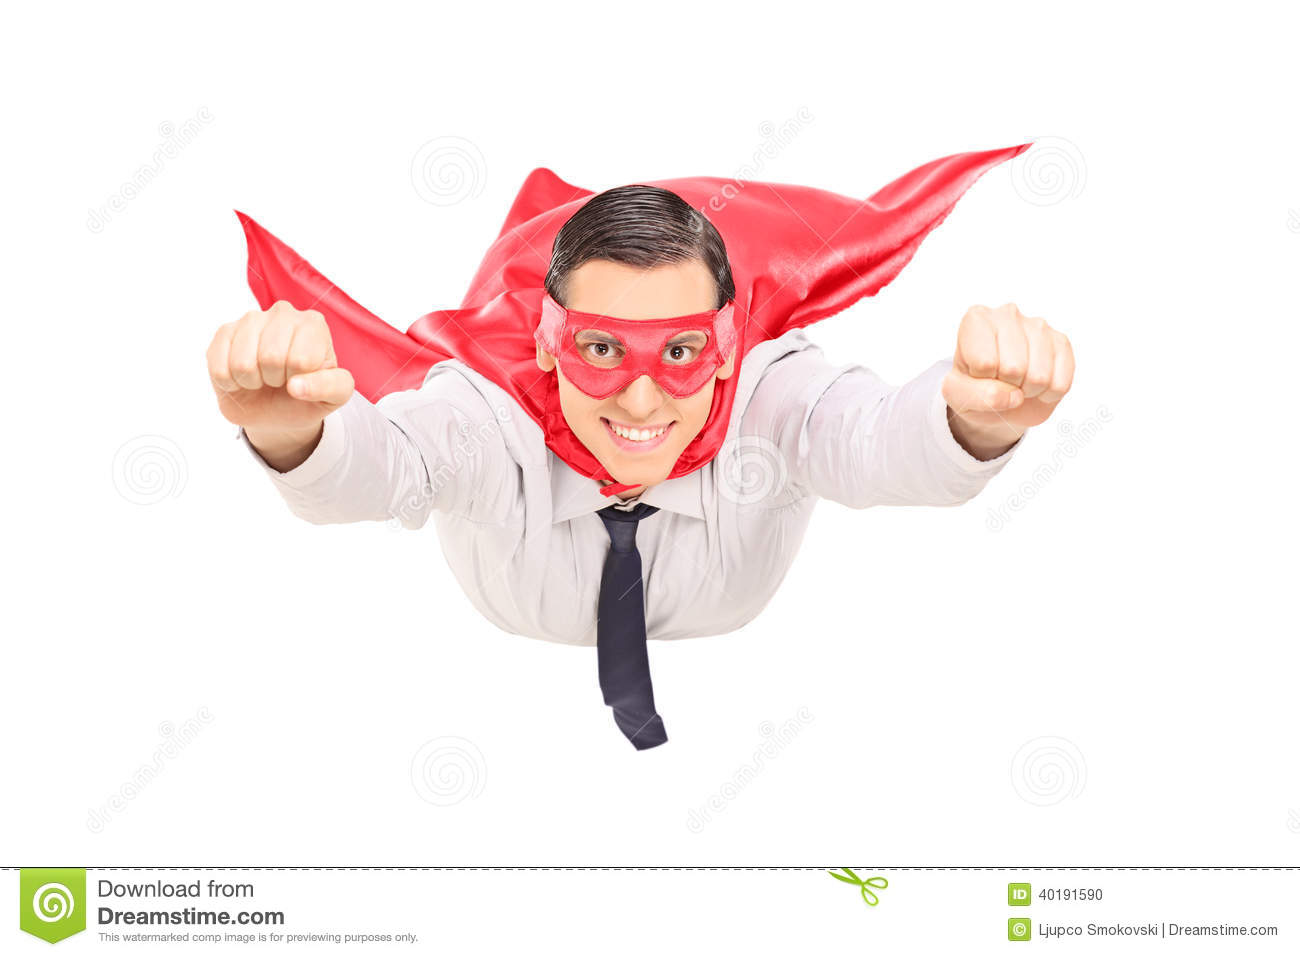 Superhero With Red Cape Flying Stock Photo - Image: 40191590